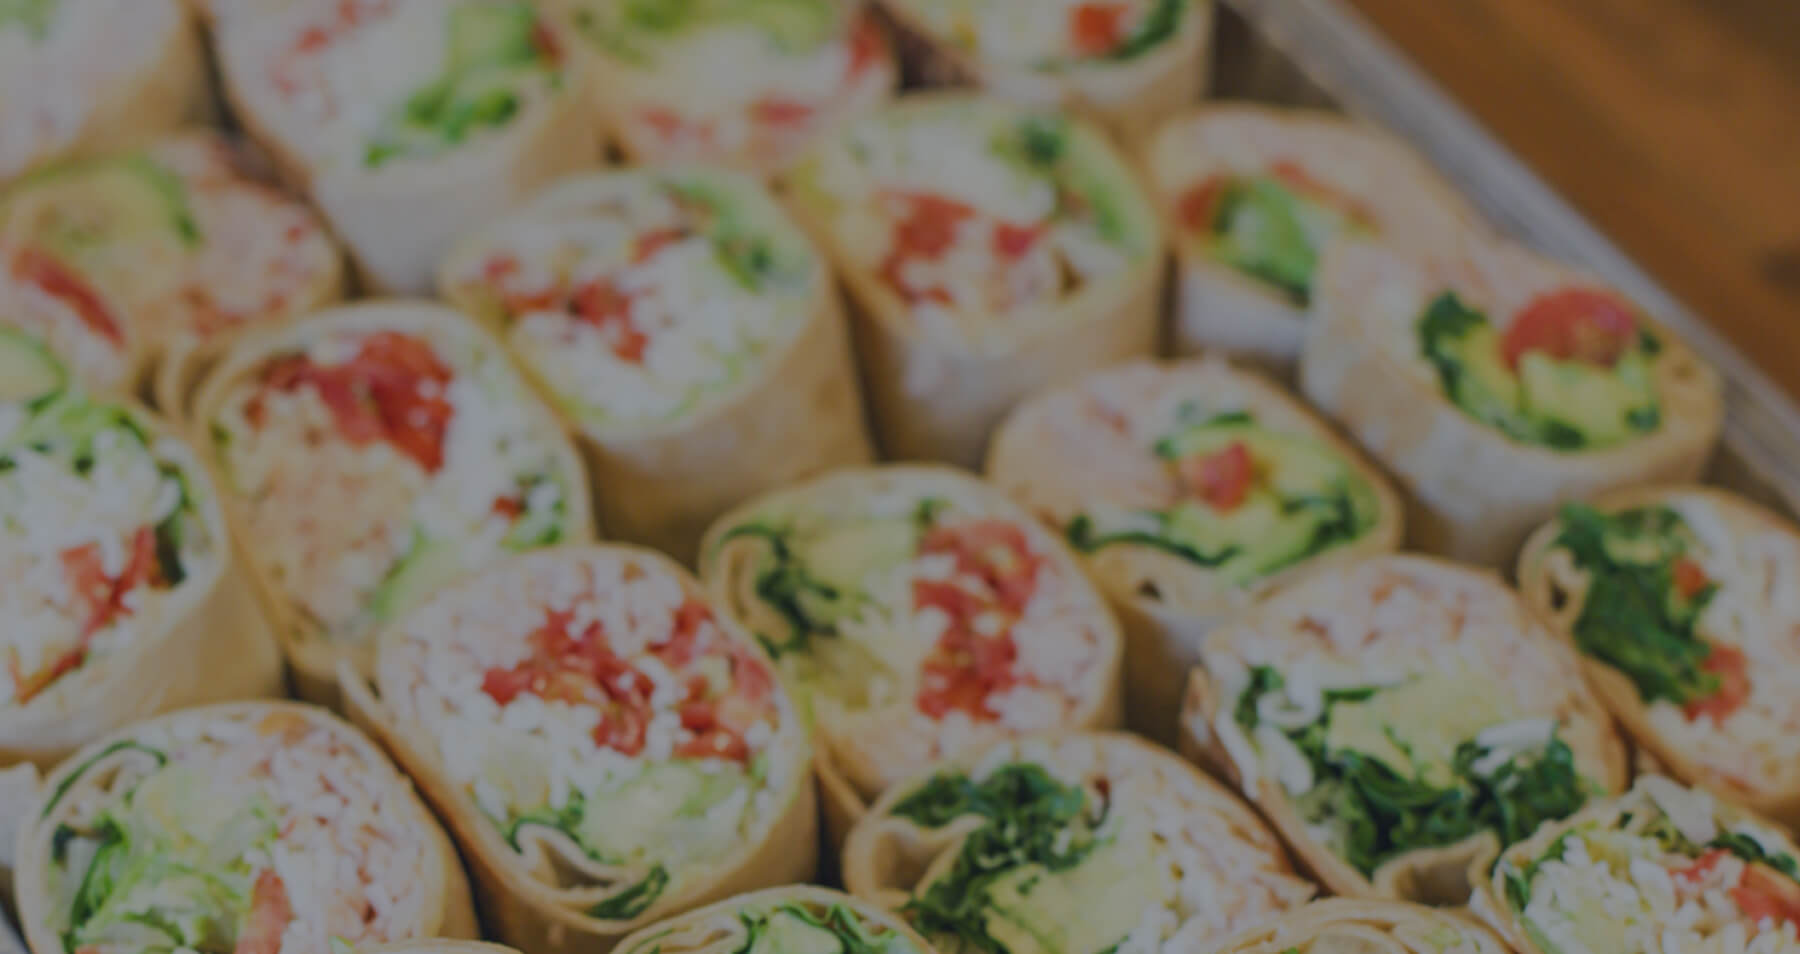 Catering Beyond Juicery Eatery